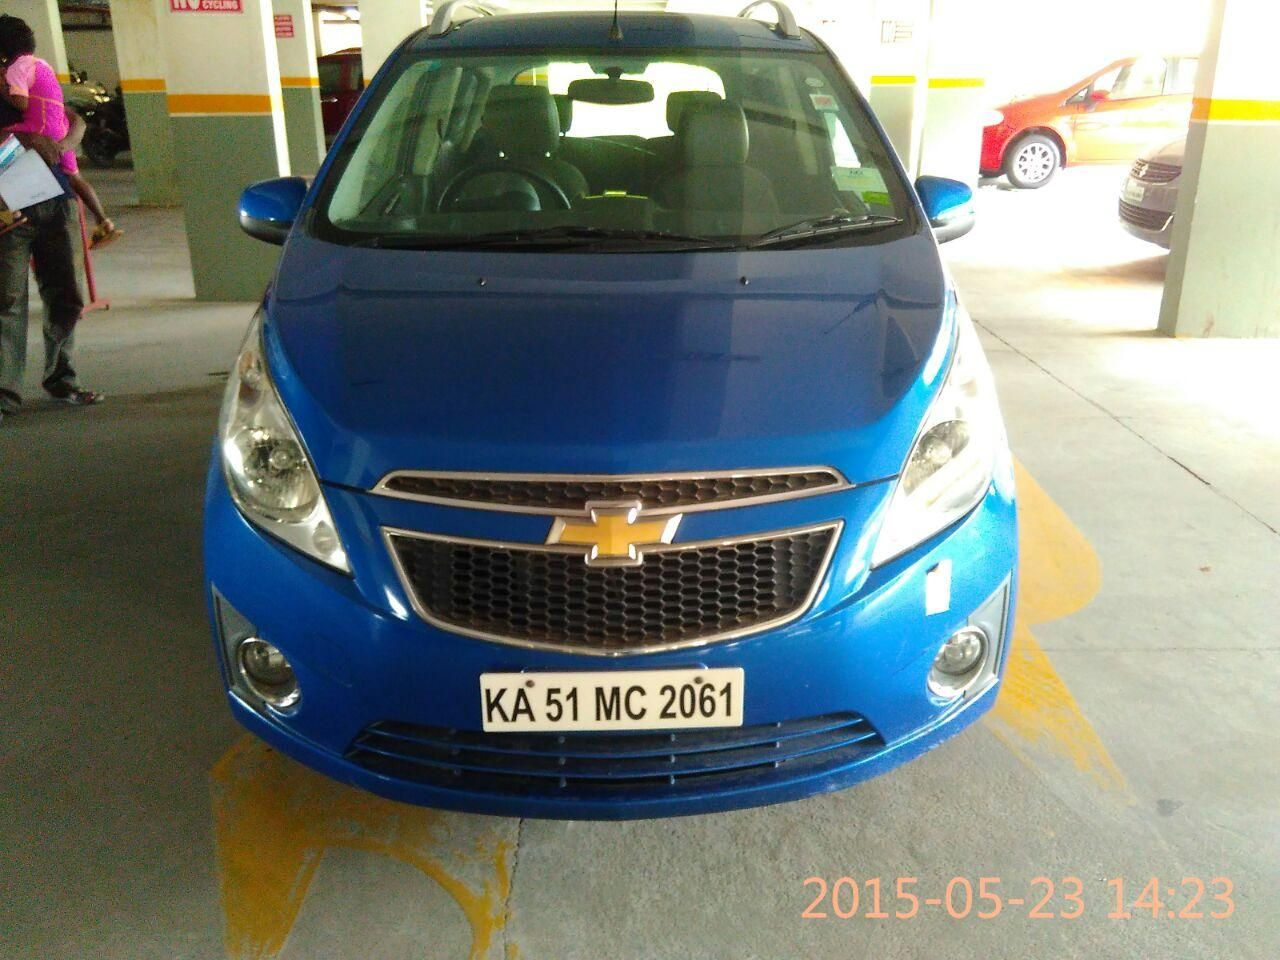 Used 2012 Chevrolet Beat LT Petrol for 3.7 Lakhs Zoomo